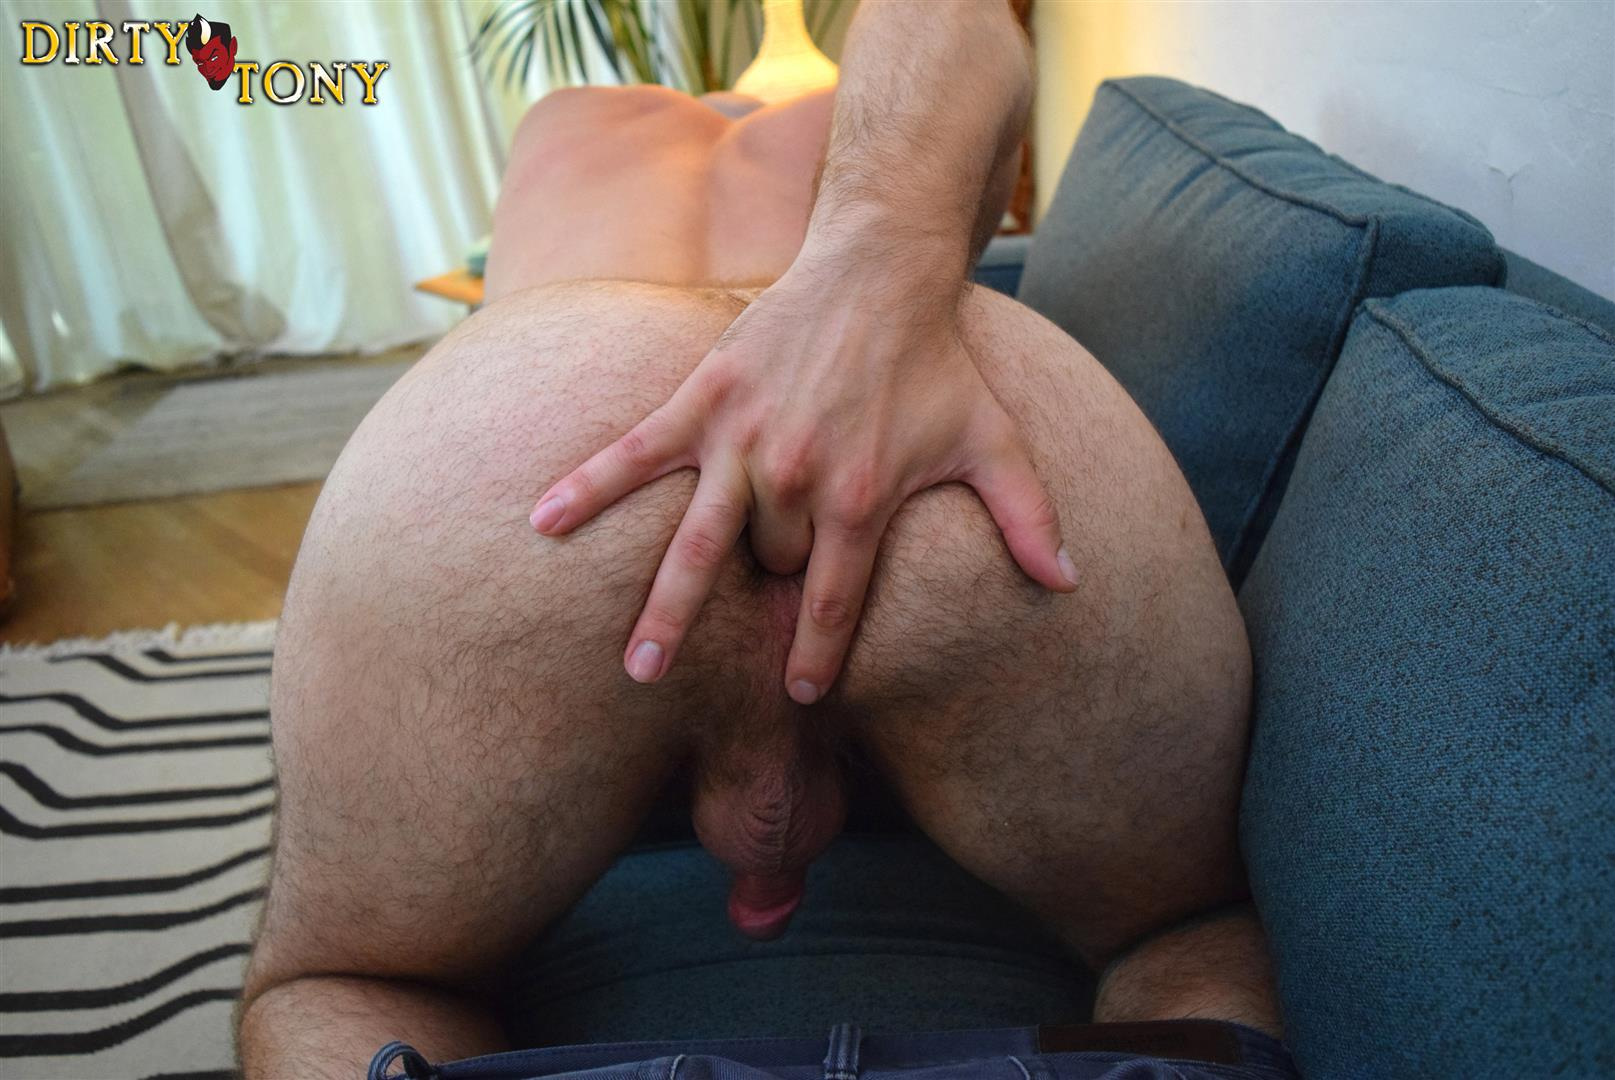 Dirty-Tony-Damon-Andros-Hairy-Otter-With-A-Thick-Cock-Amateur-Gay-Porn-11 Jocked Up Furry Otter Stroking His Thick Cock